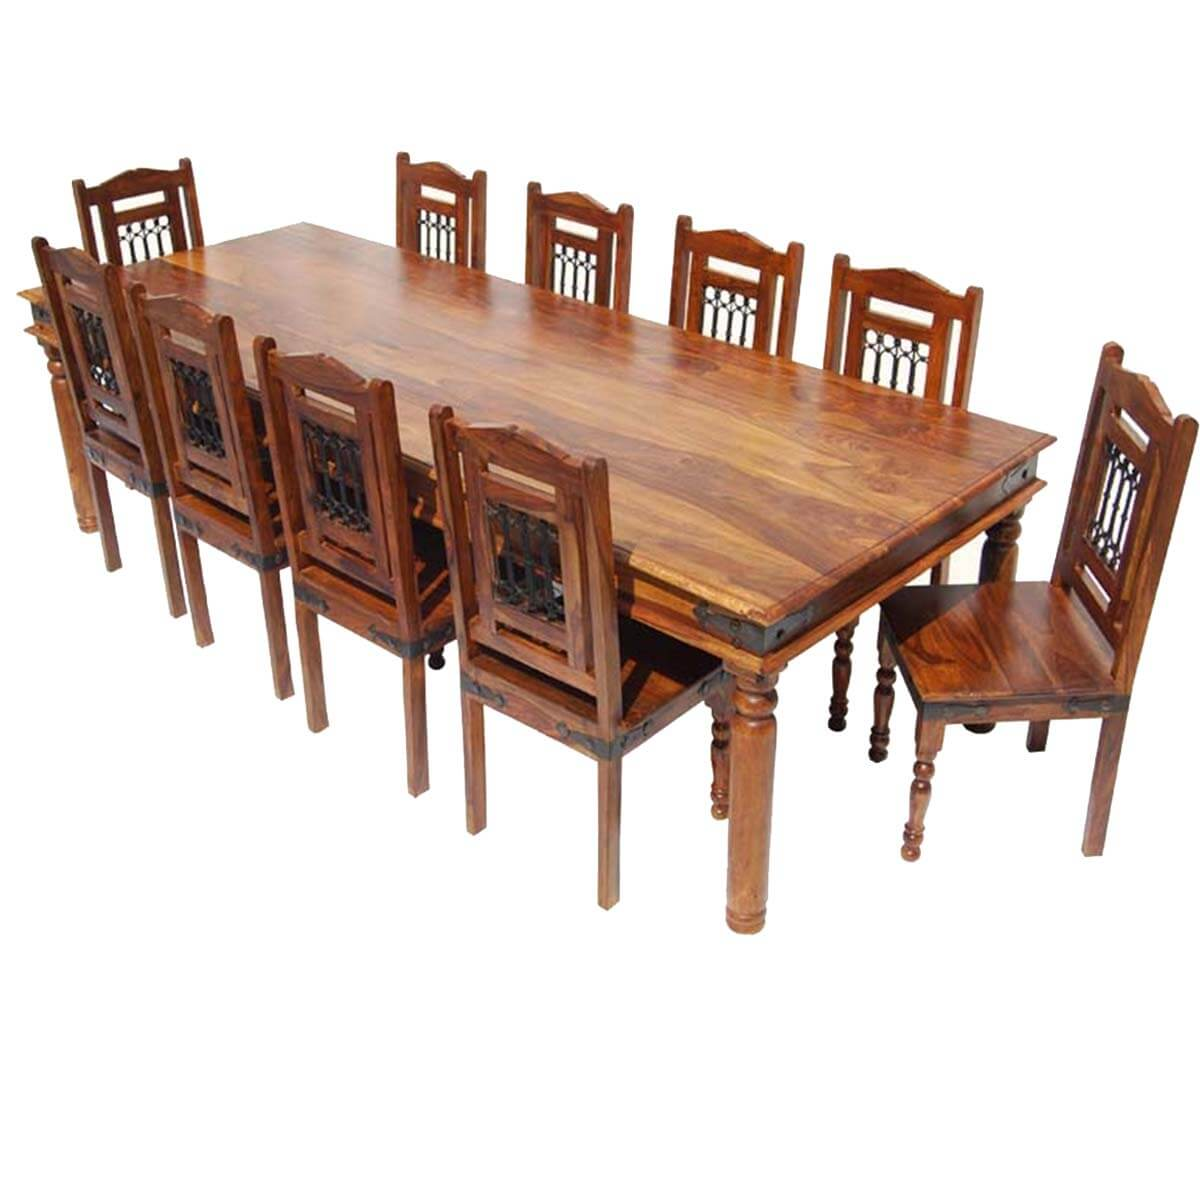 Solid wood large rustic dining room table chair sideboard set for Biggest dining table